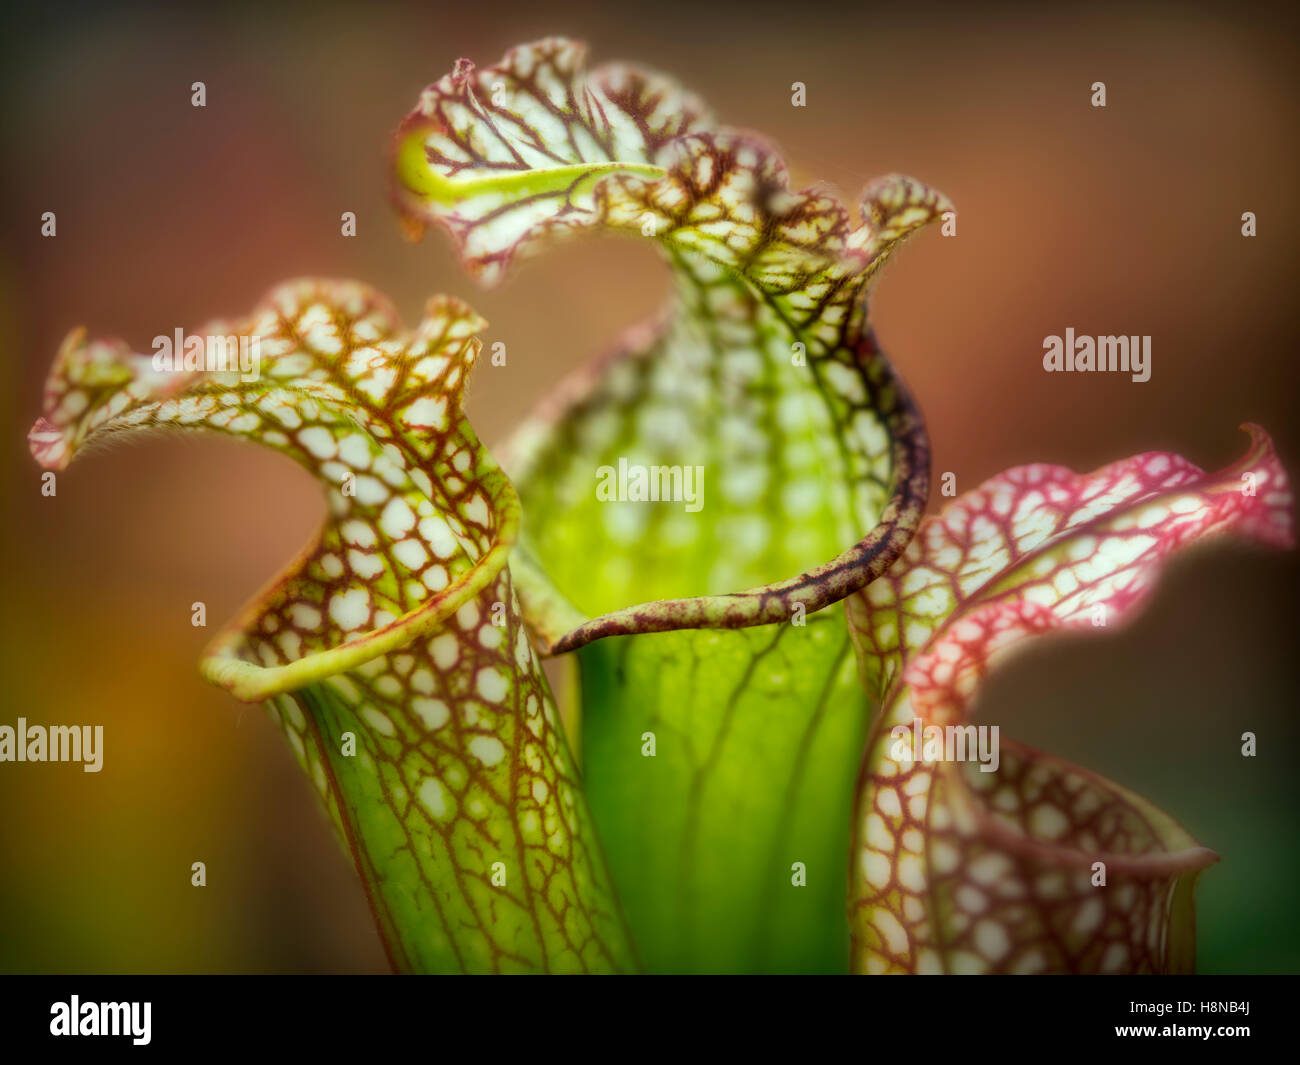 Close up of Dana's Delight Sarracenia picture plant flowers. - Stock Image